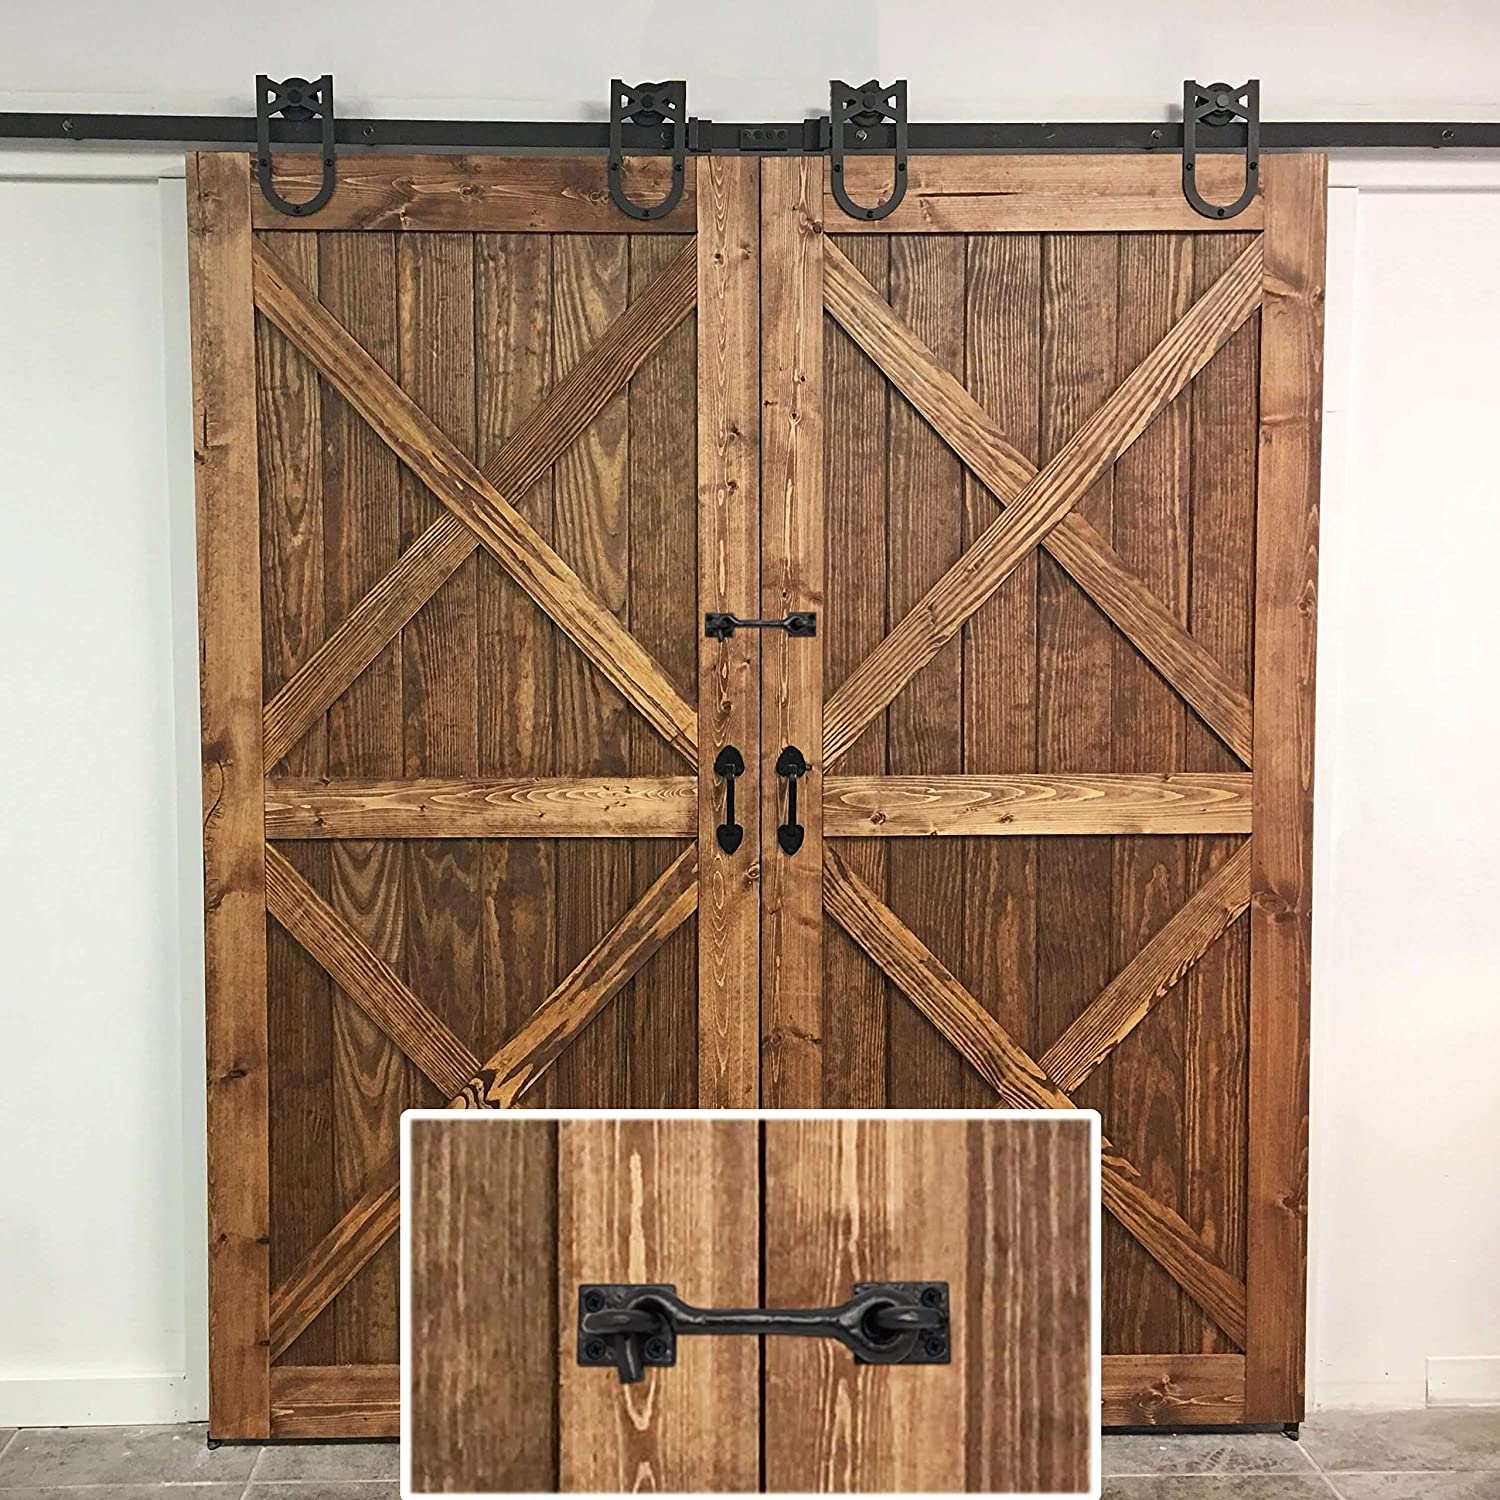 Rustic Best Value for Sliding Barn Door 2 Pack Ironmite 4.5 Premium Cast Iron Cabin Hook and Eye Latch Lock 4.5 inch Heavy Duty Metal Design with Screws Home Vintage Bedroom Gate Shed